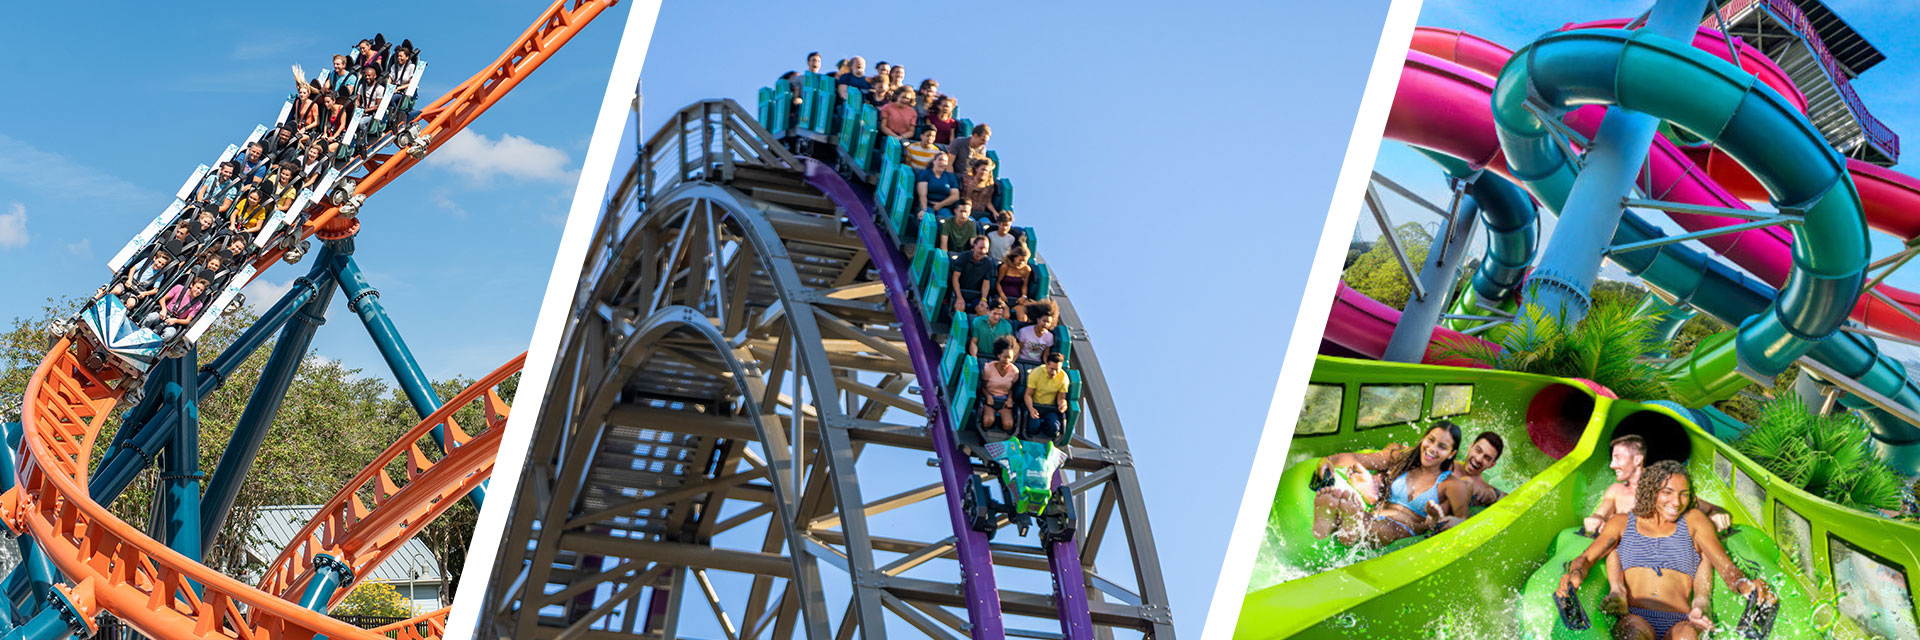 Seaworld Orlando Tickets Book Now For Just 163 10 Deposit